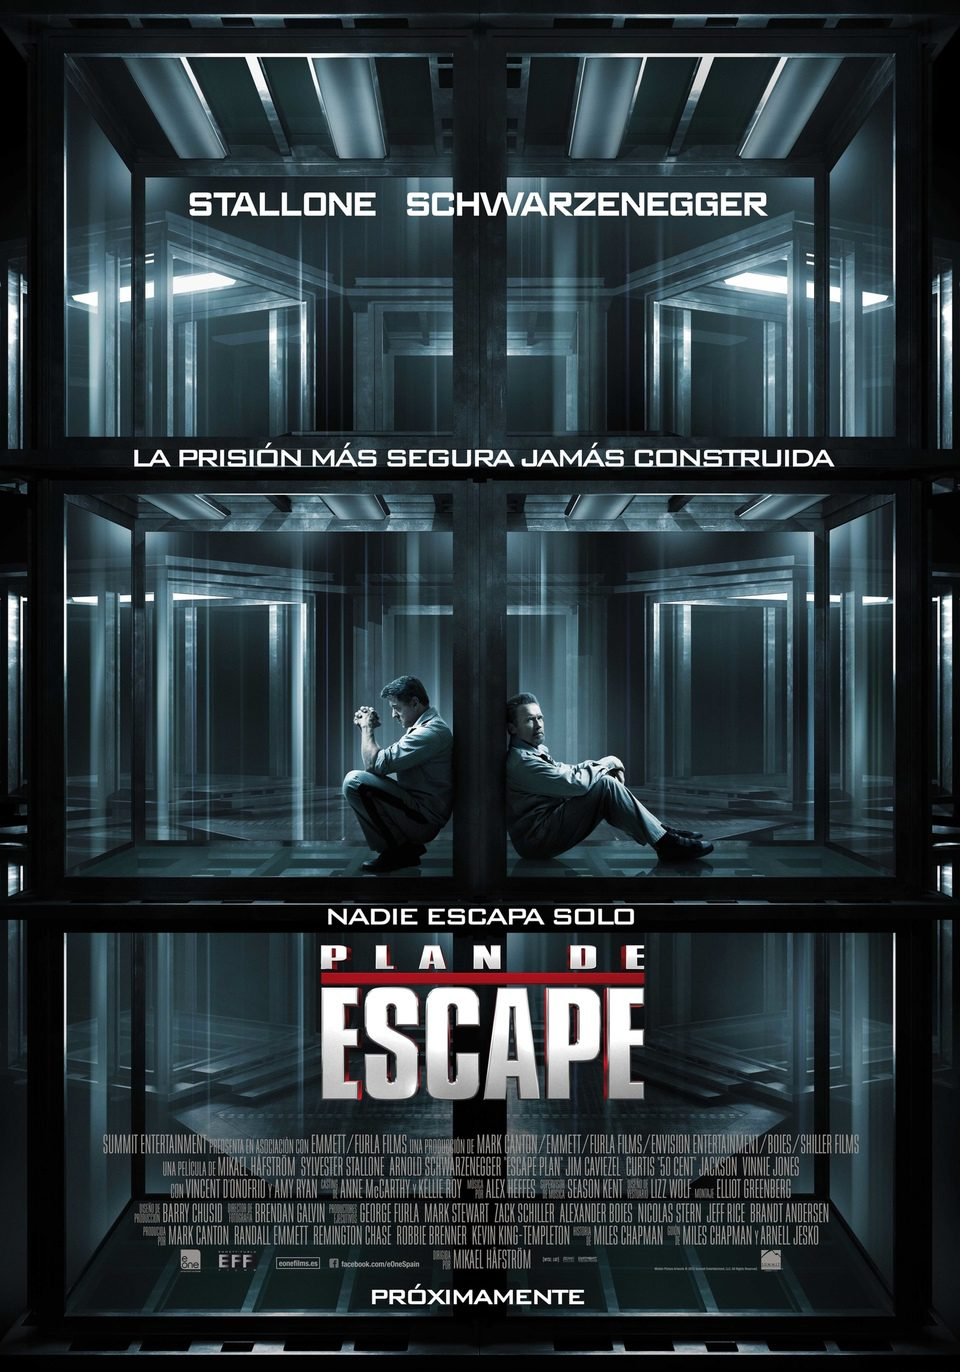 plan de escape, the tomb, película